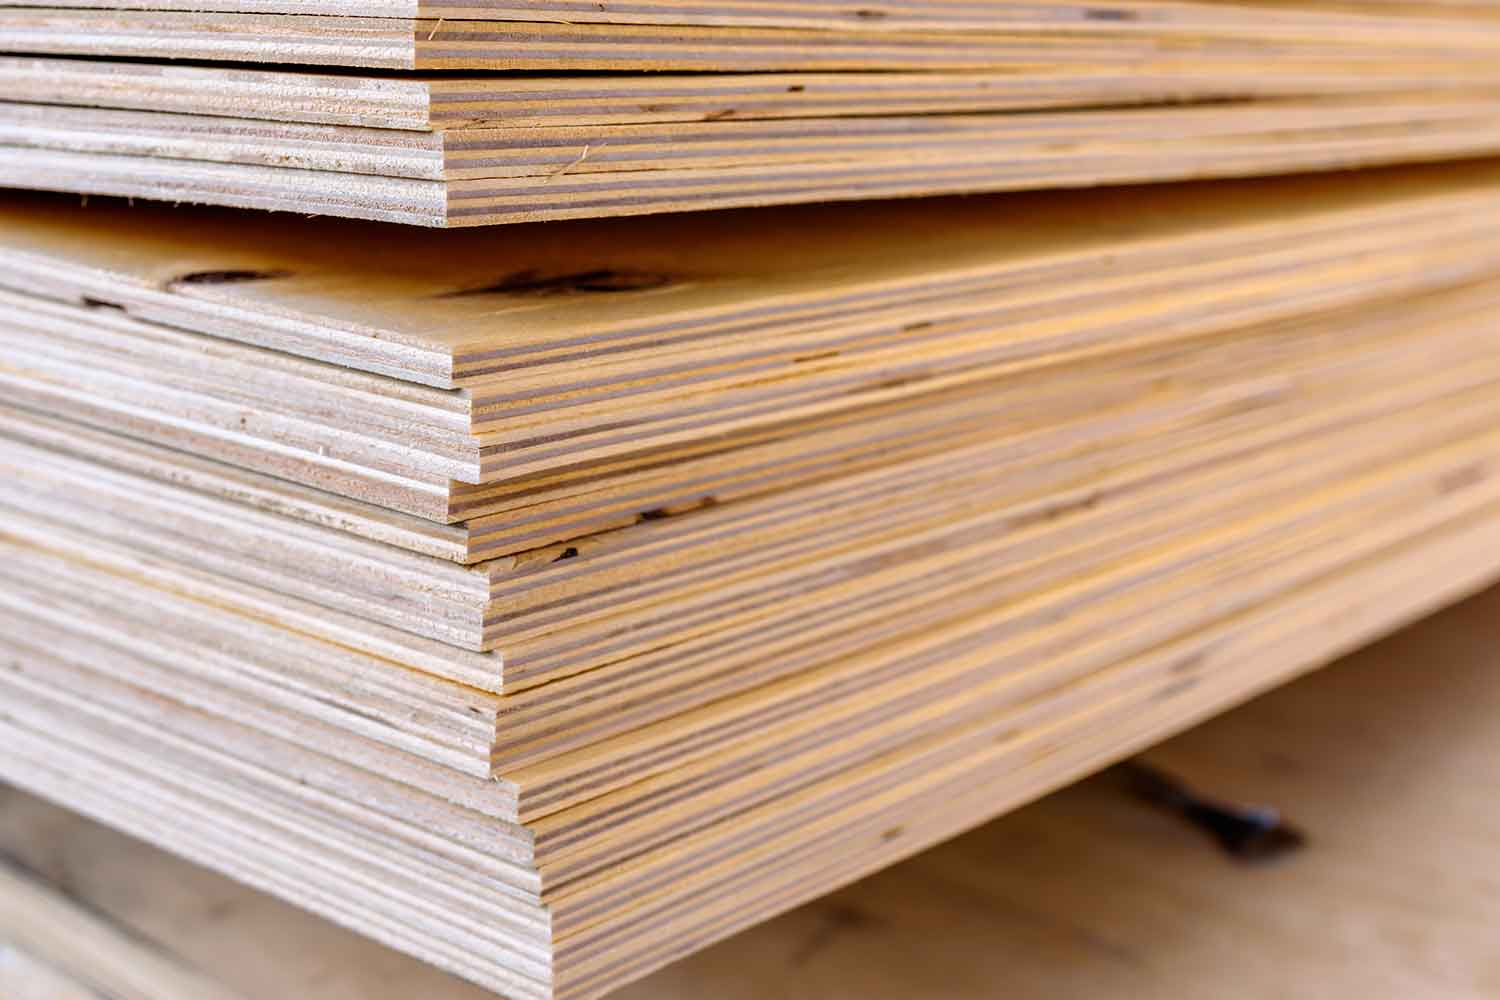 b8c8df5d5c Reddit user makes bed frame using 7 sheets of plywood | Better Homes and  Gardens